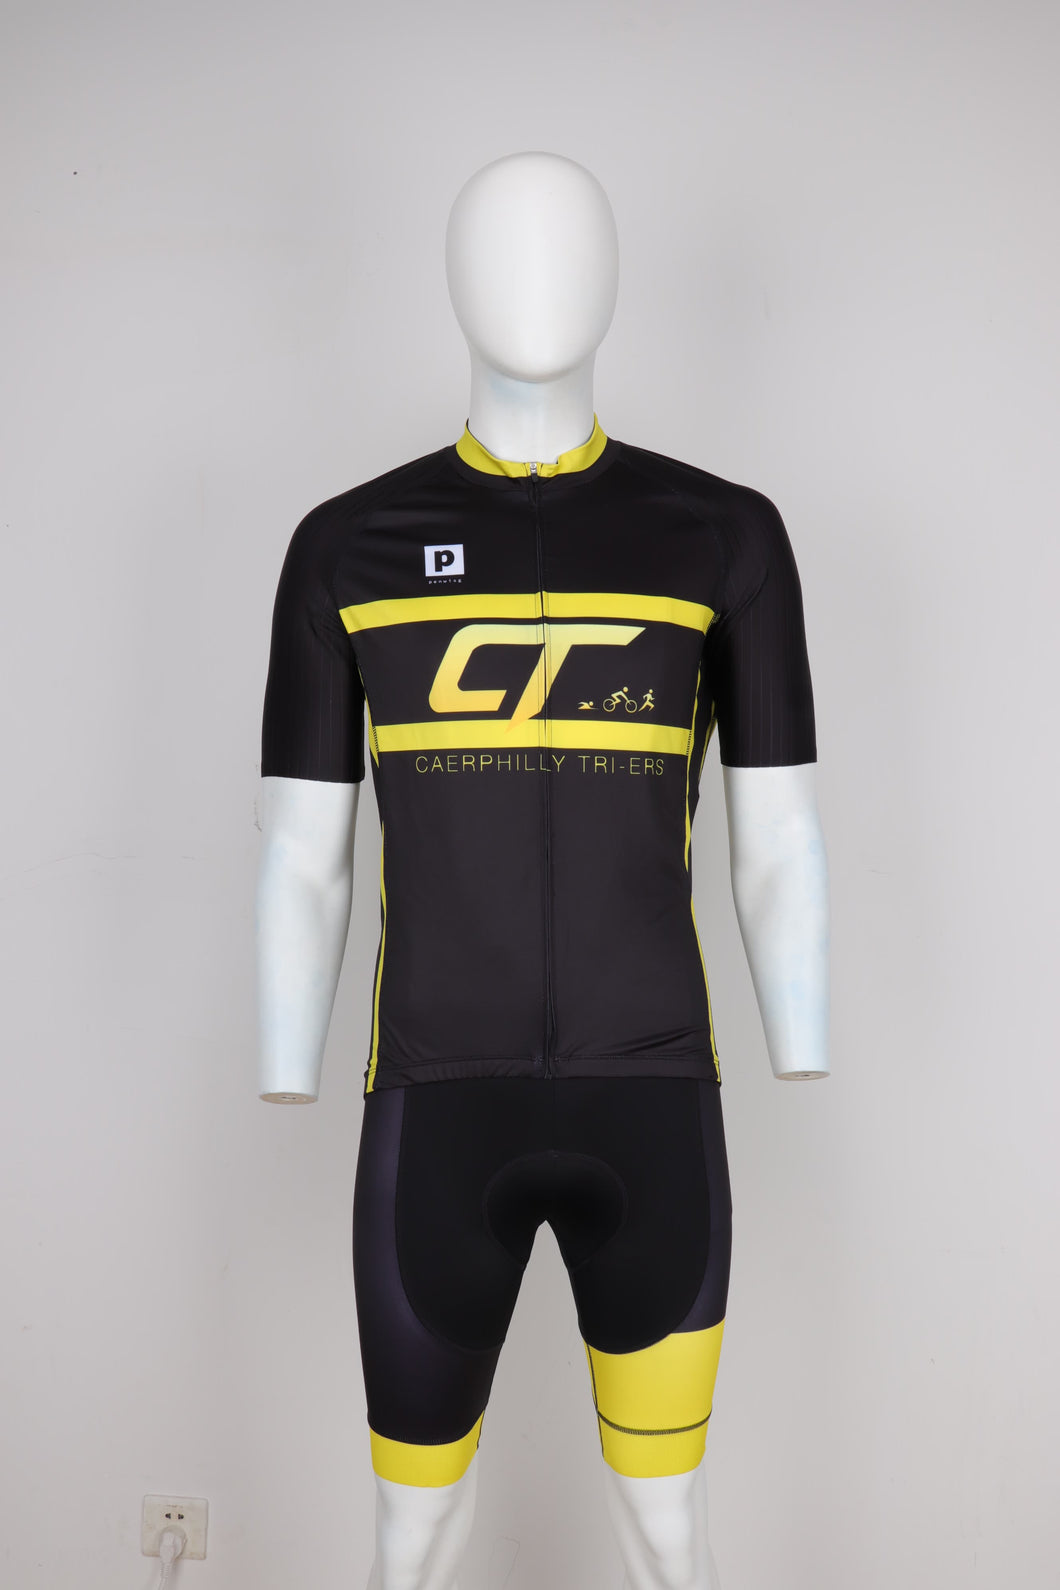 Caerphilly Tri-ers Short Sleeve Cycling Top